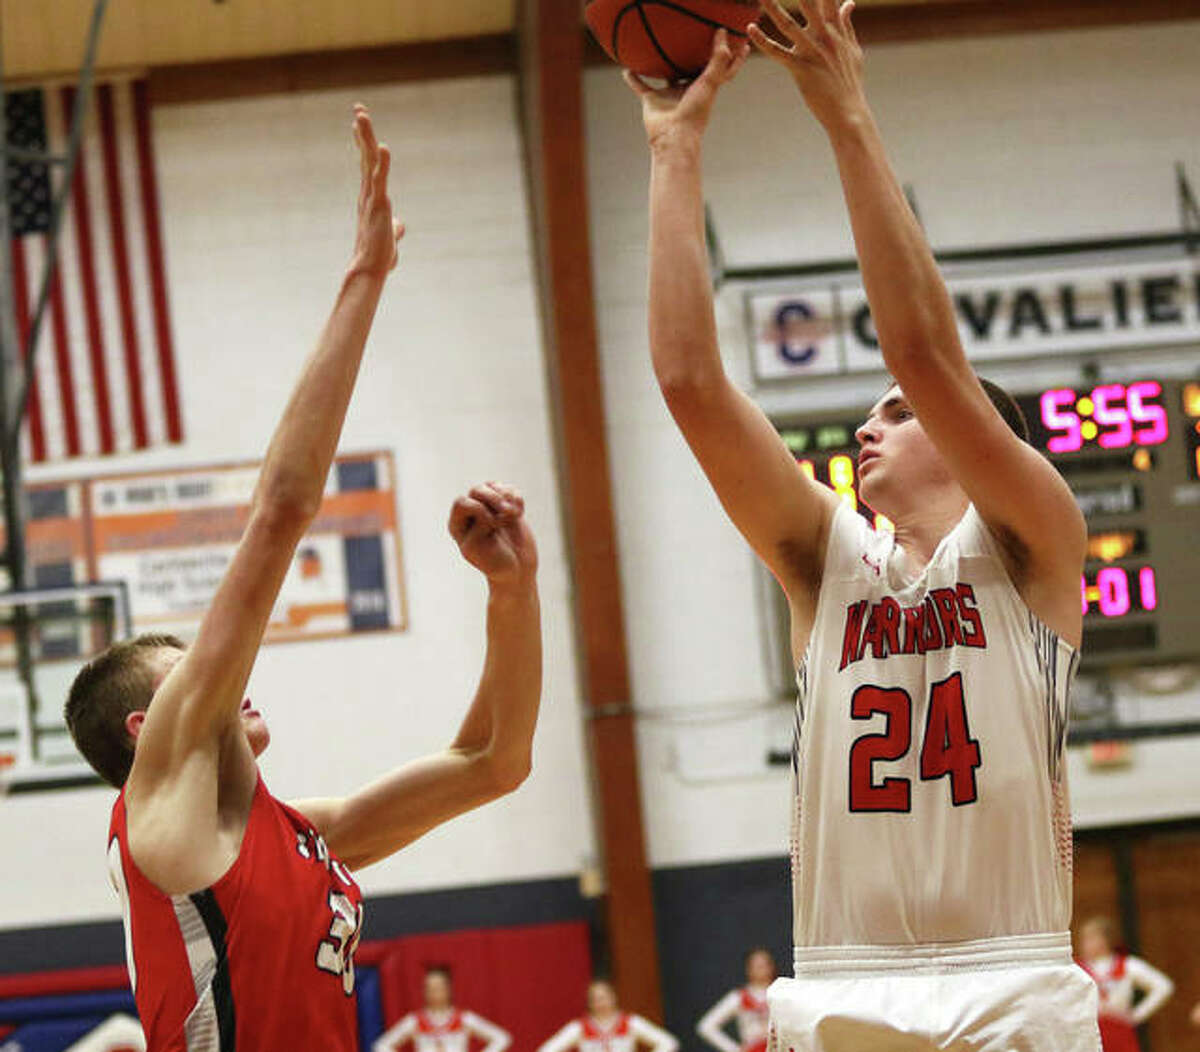 Calhoun's Ben Eberlin (24) shoots over Staunton's Ethan Booth during the Dec. 30 title game at the Carlinville Tournament.